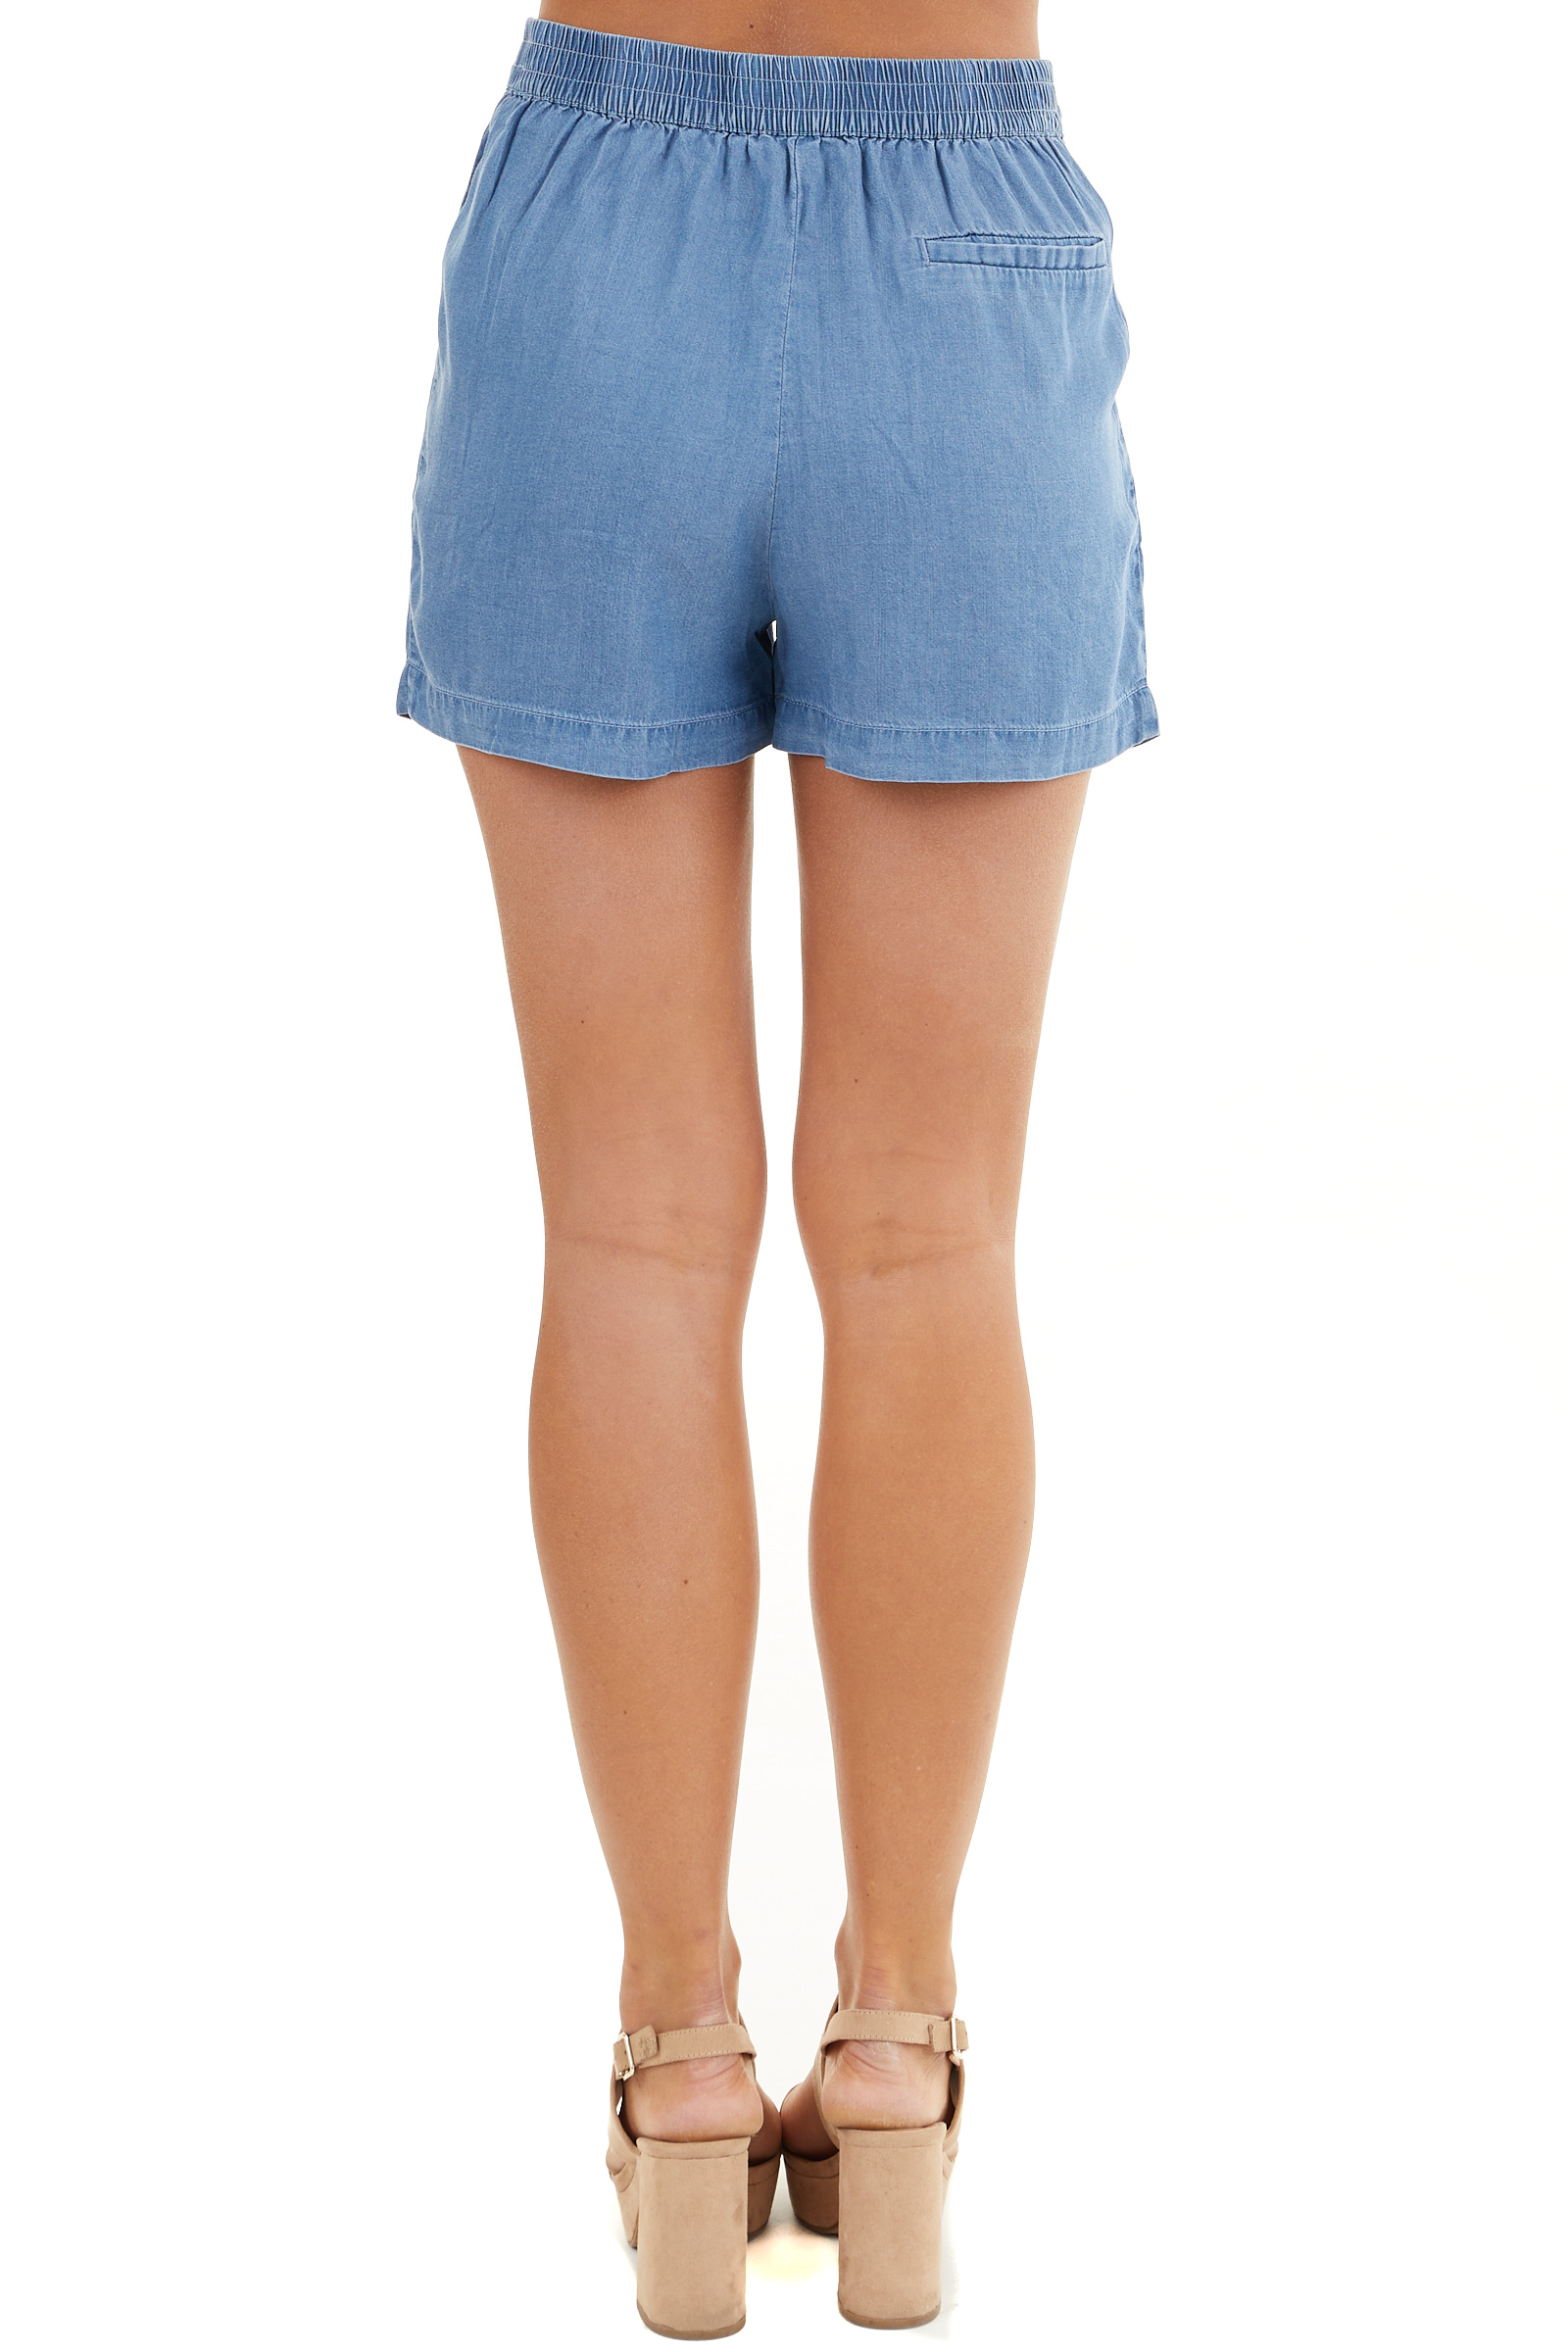 Denim Blue High Waisted Chambray Shorts with Tie Detail back view